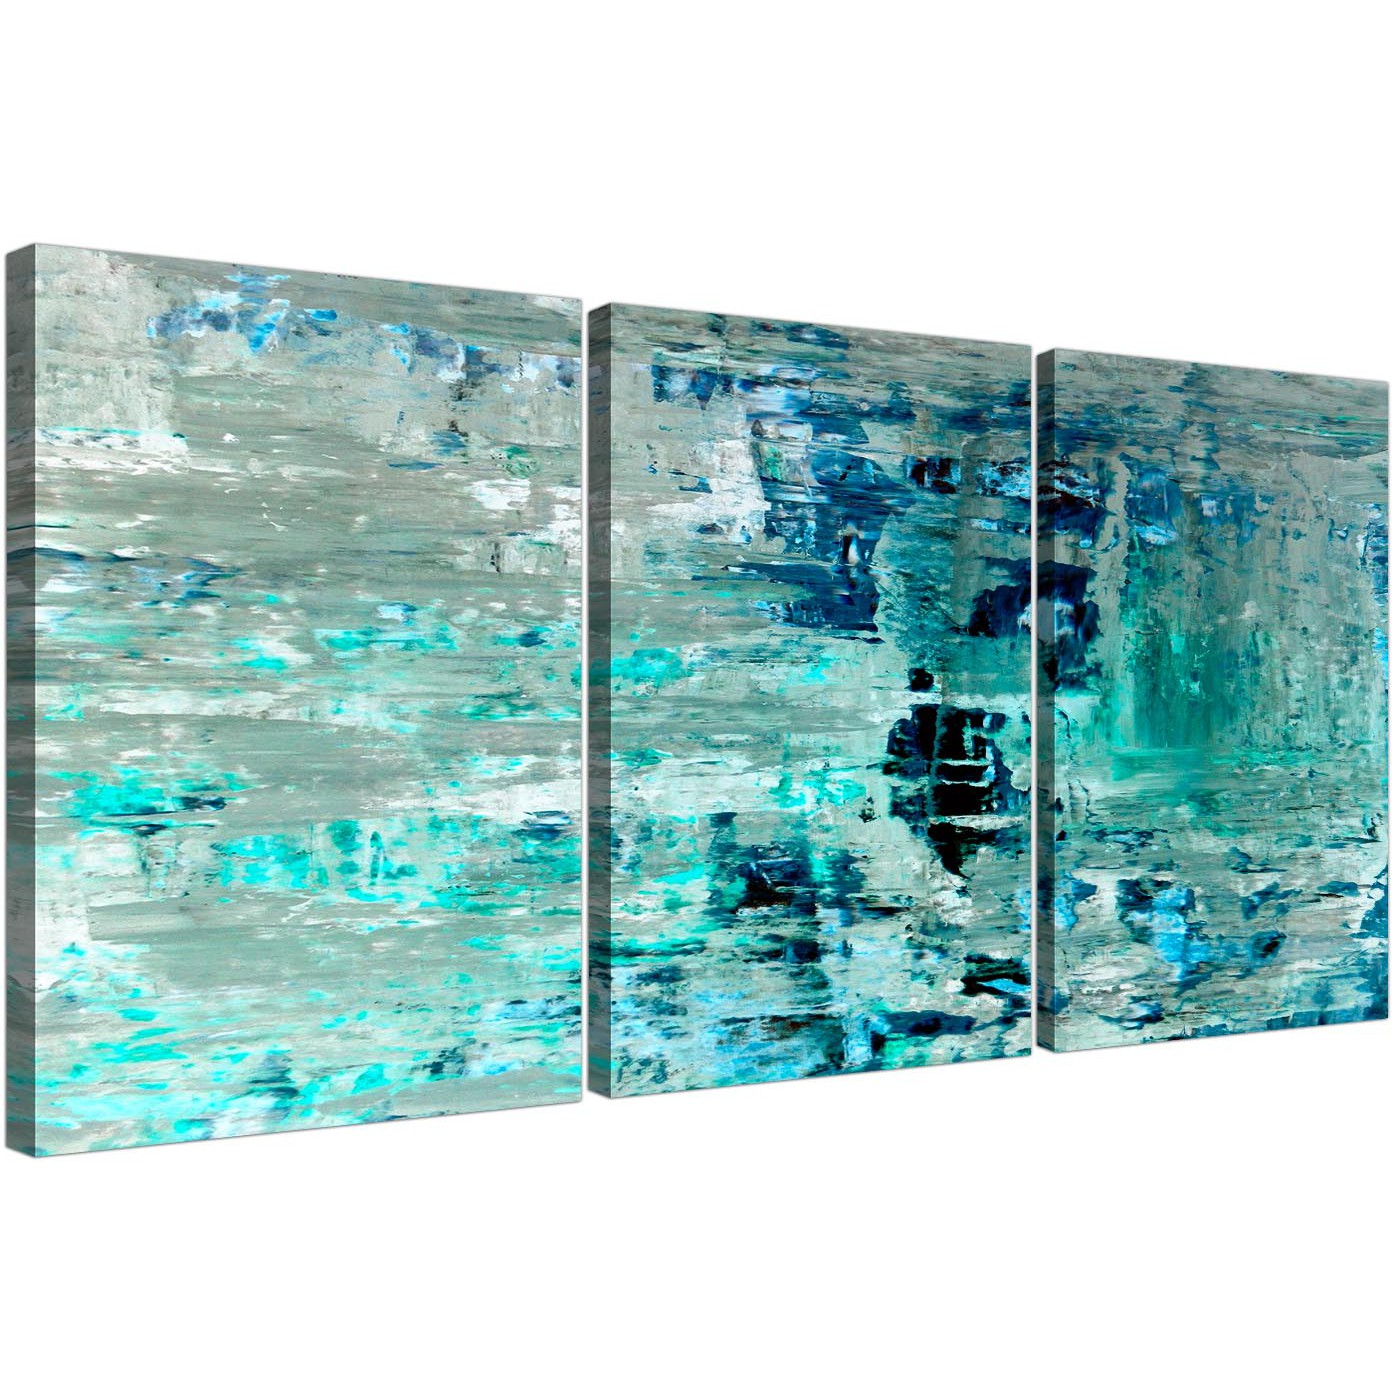 Great Oversized Turquoise Teal Abstract Painting Wall Art Print Canvas Split 3  Panel 3333 For Your Bedroom Display Gallery Item 1 ...